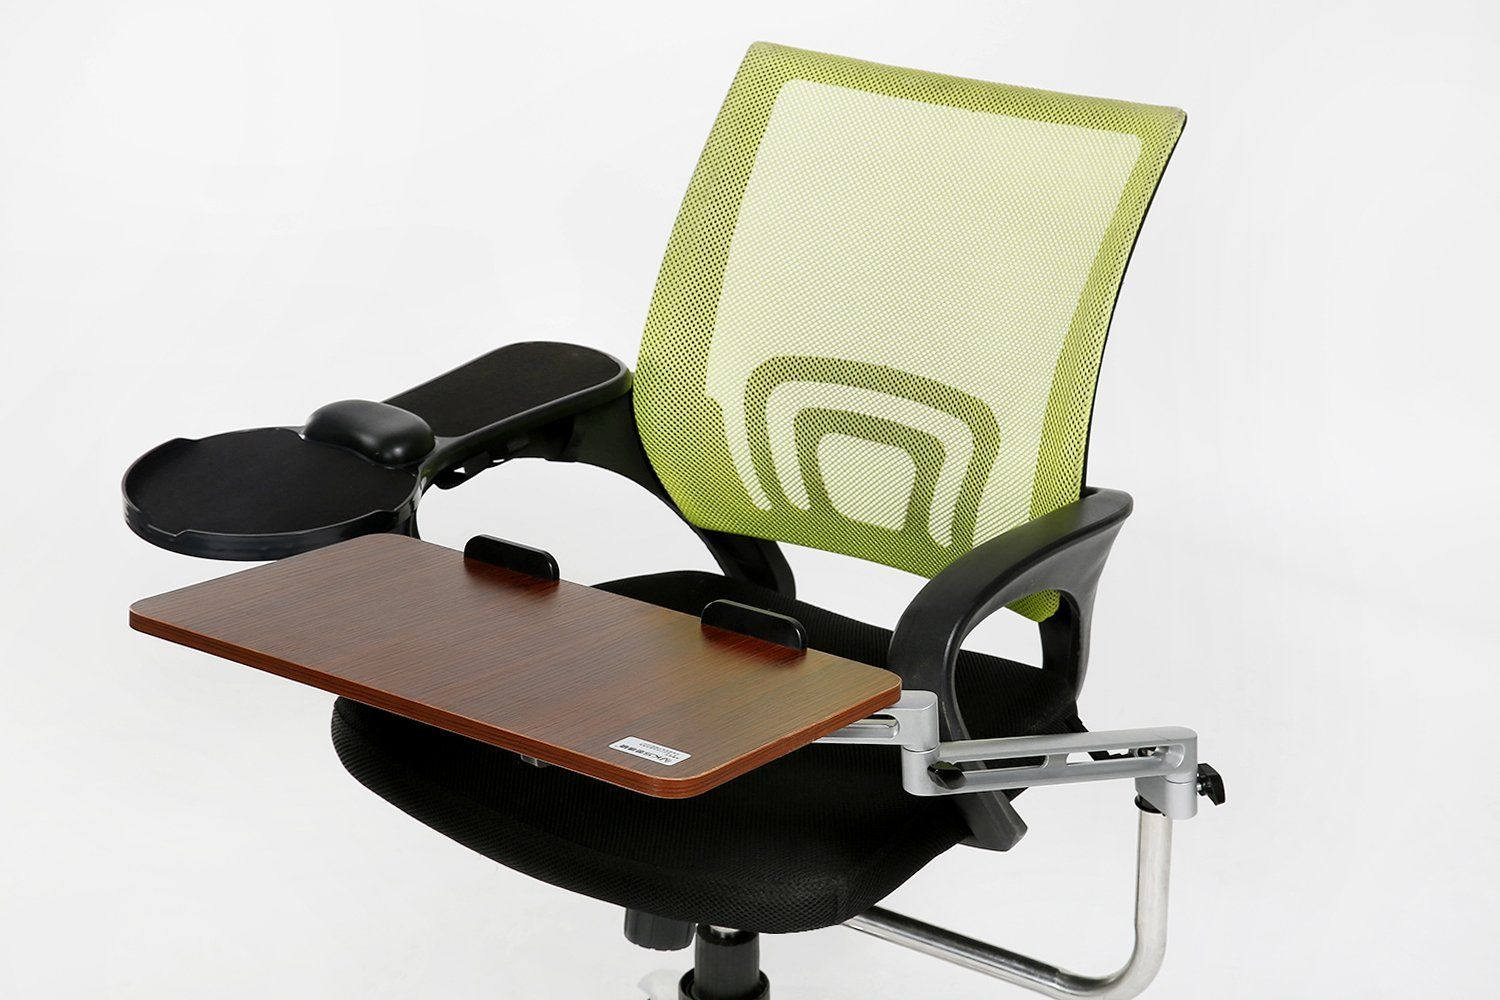 chair mount keyboard tray canada black covers for sale durban elink pro and laptop